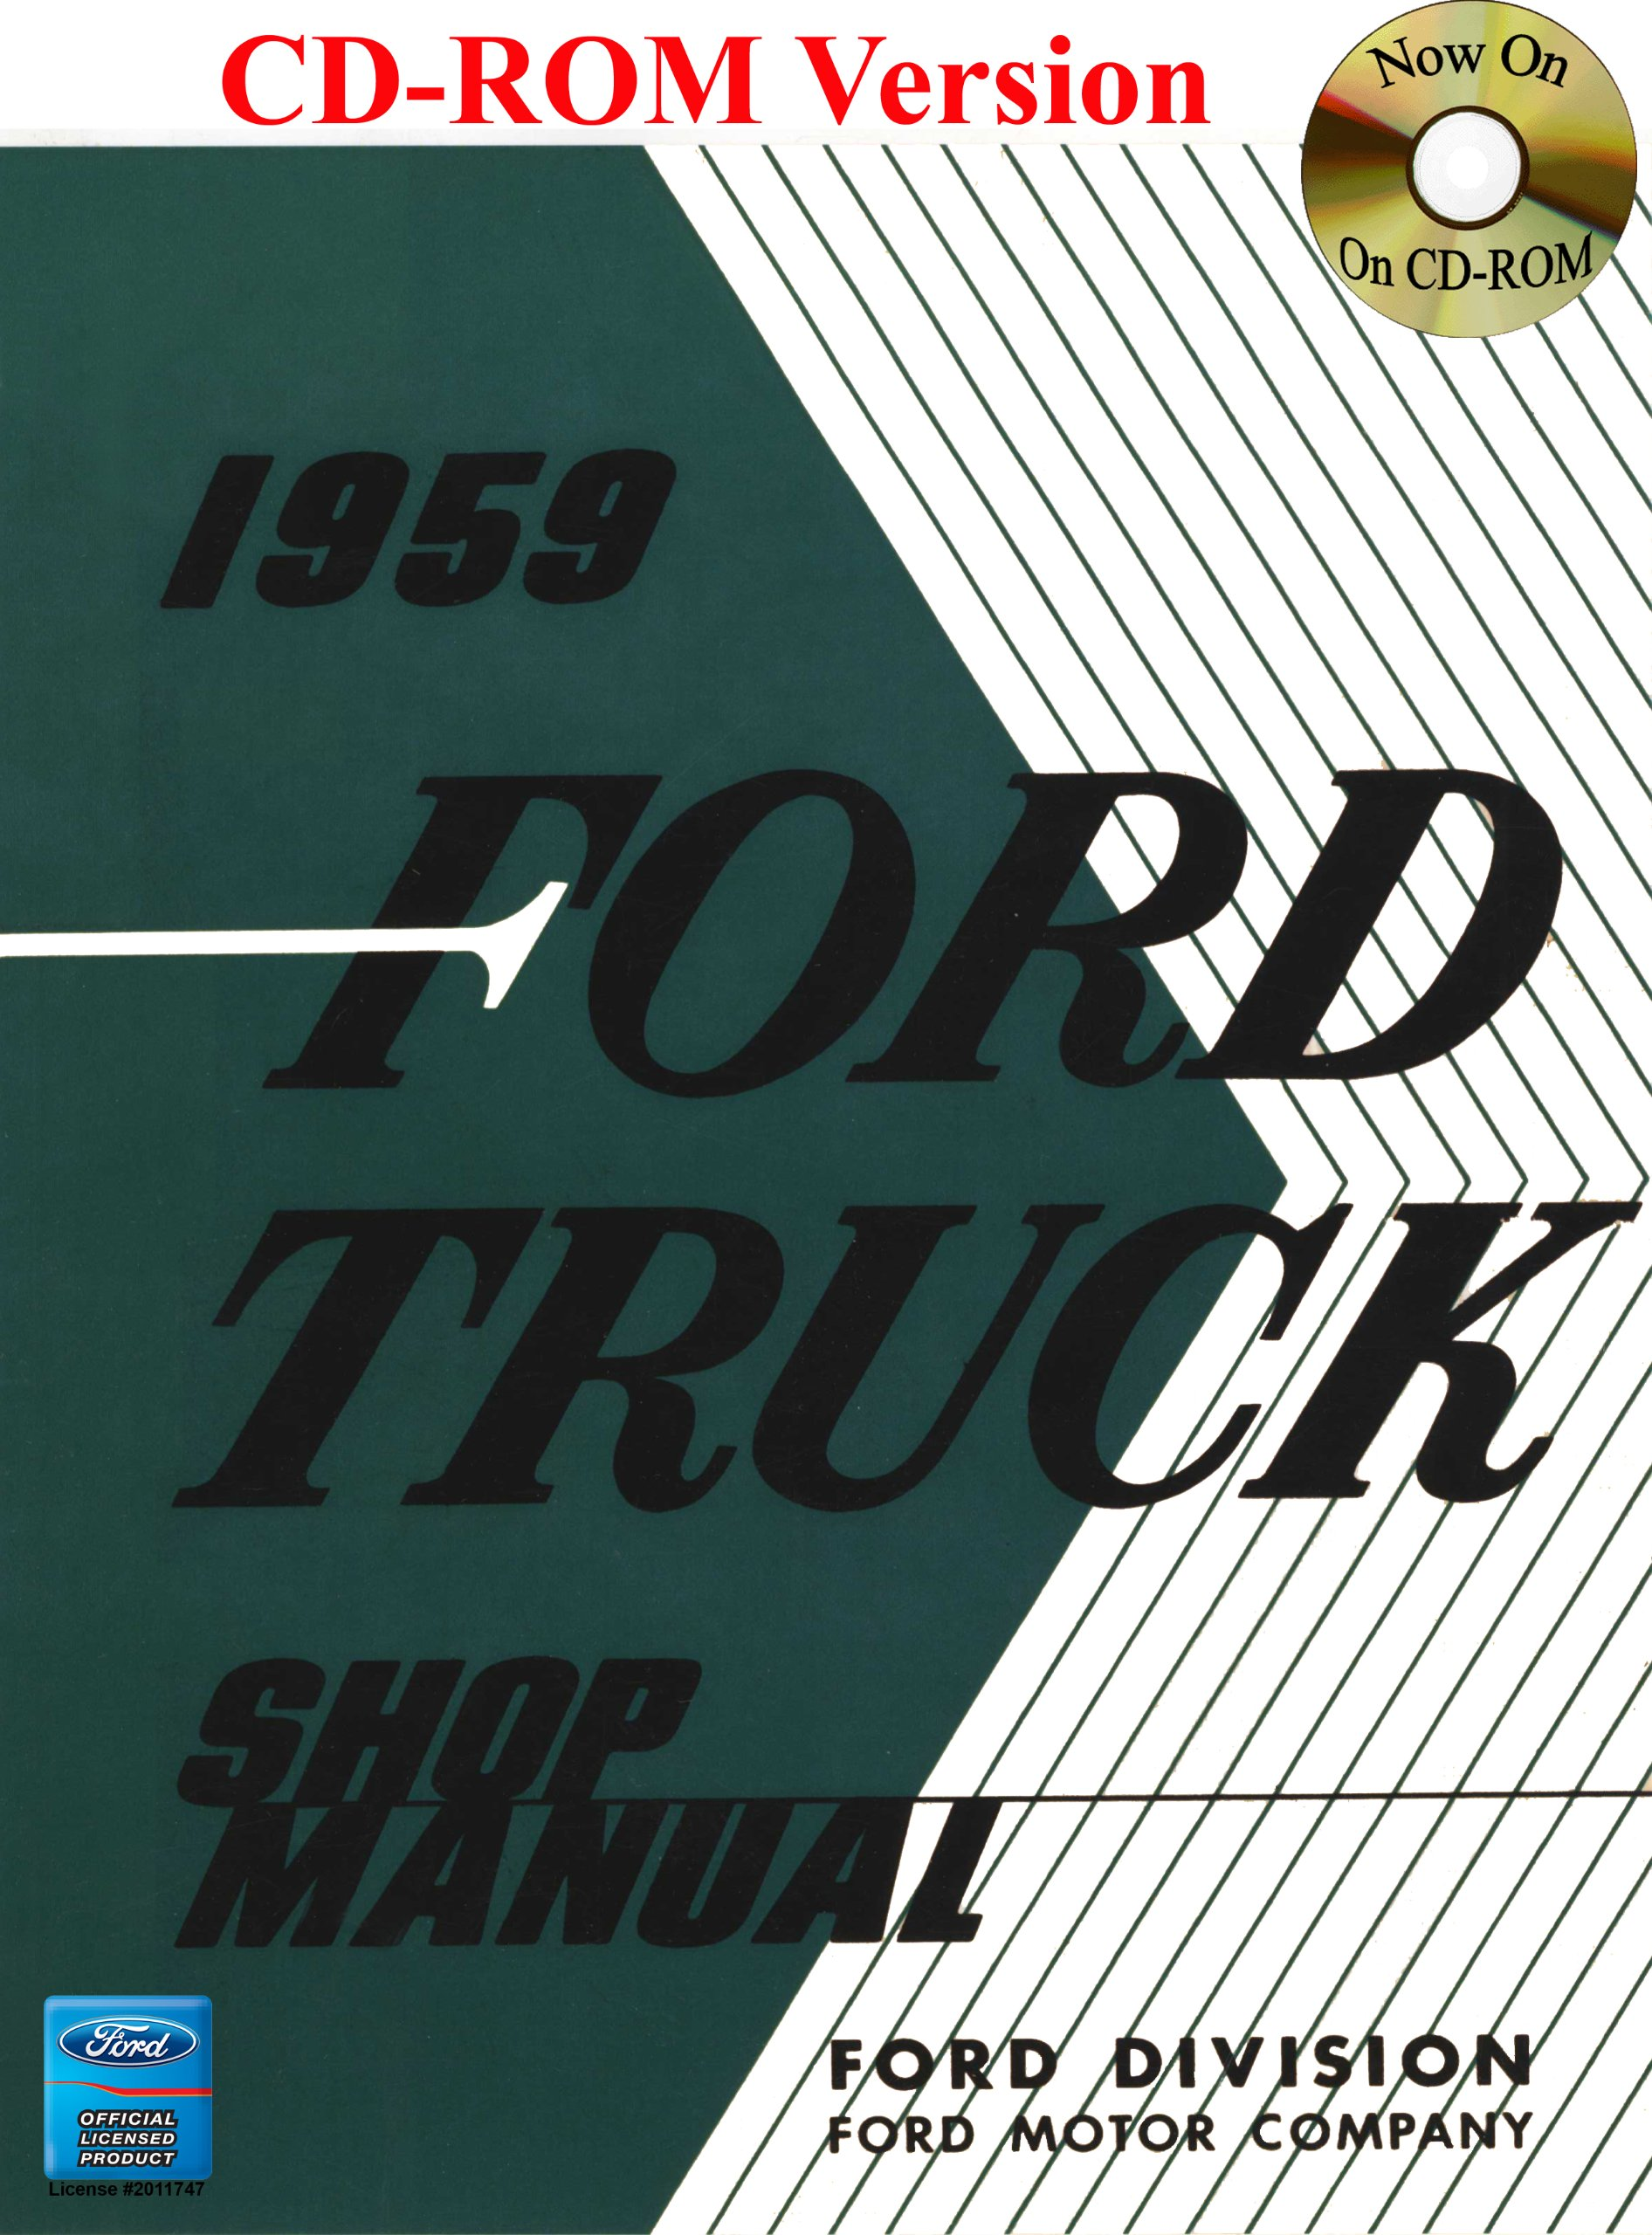 1959 ford truck shop manual ford motor company, david e leblanc 1959 Ford F100 Ignition Wiring Diagram 1959 ford truck shop manual ford motor company, david e leblanc 9781603710688 amazon com books 1959 ford f100 wiring diagram